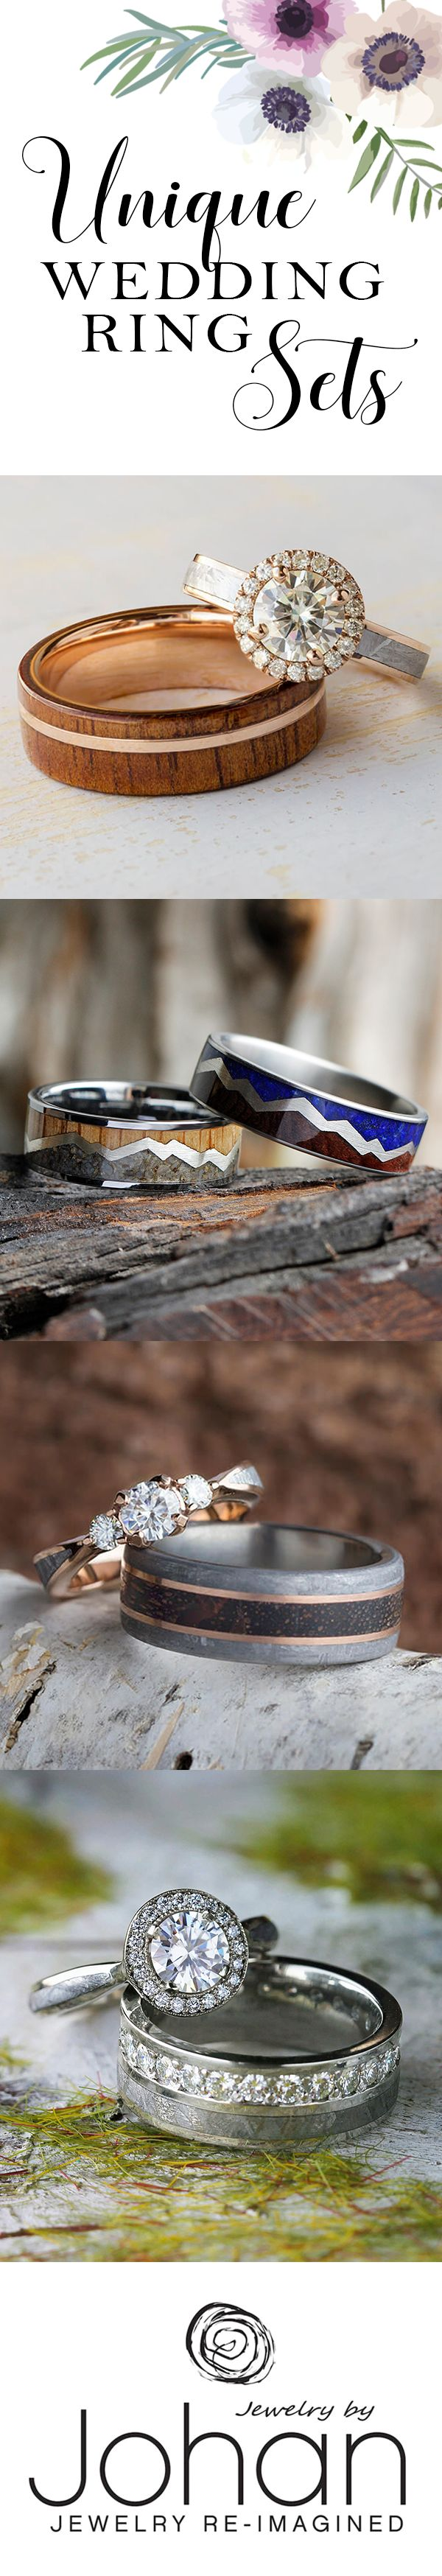 Express your love AND individual sense of style with one of our stunning wedding ring sets.